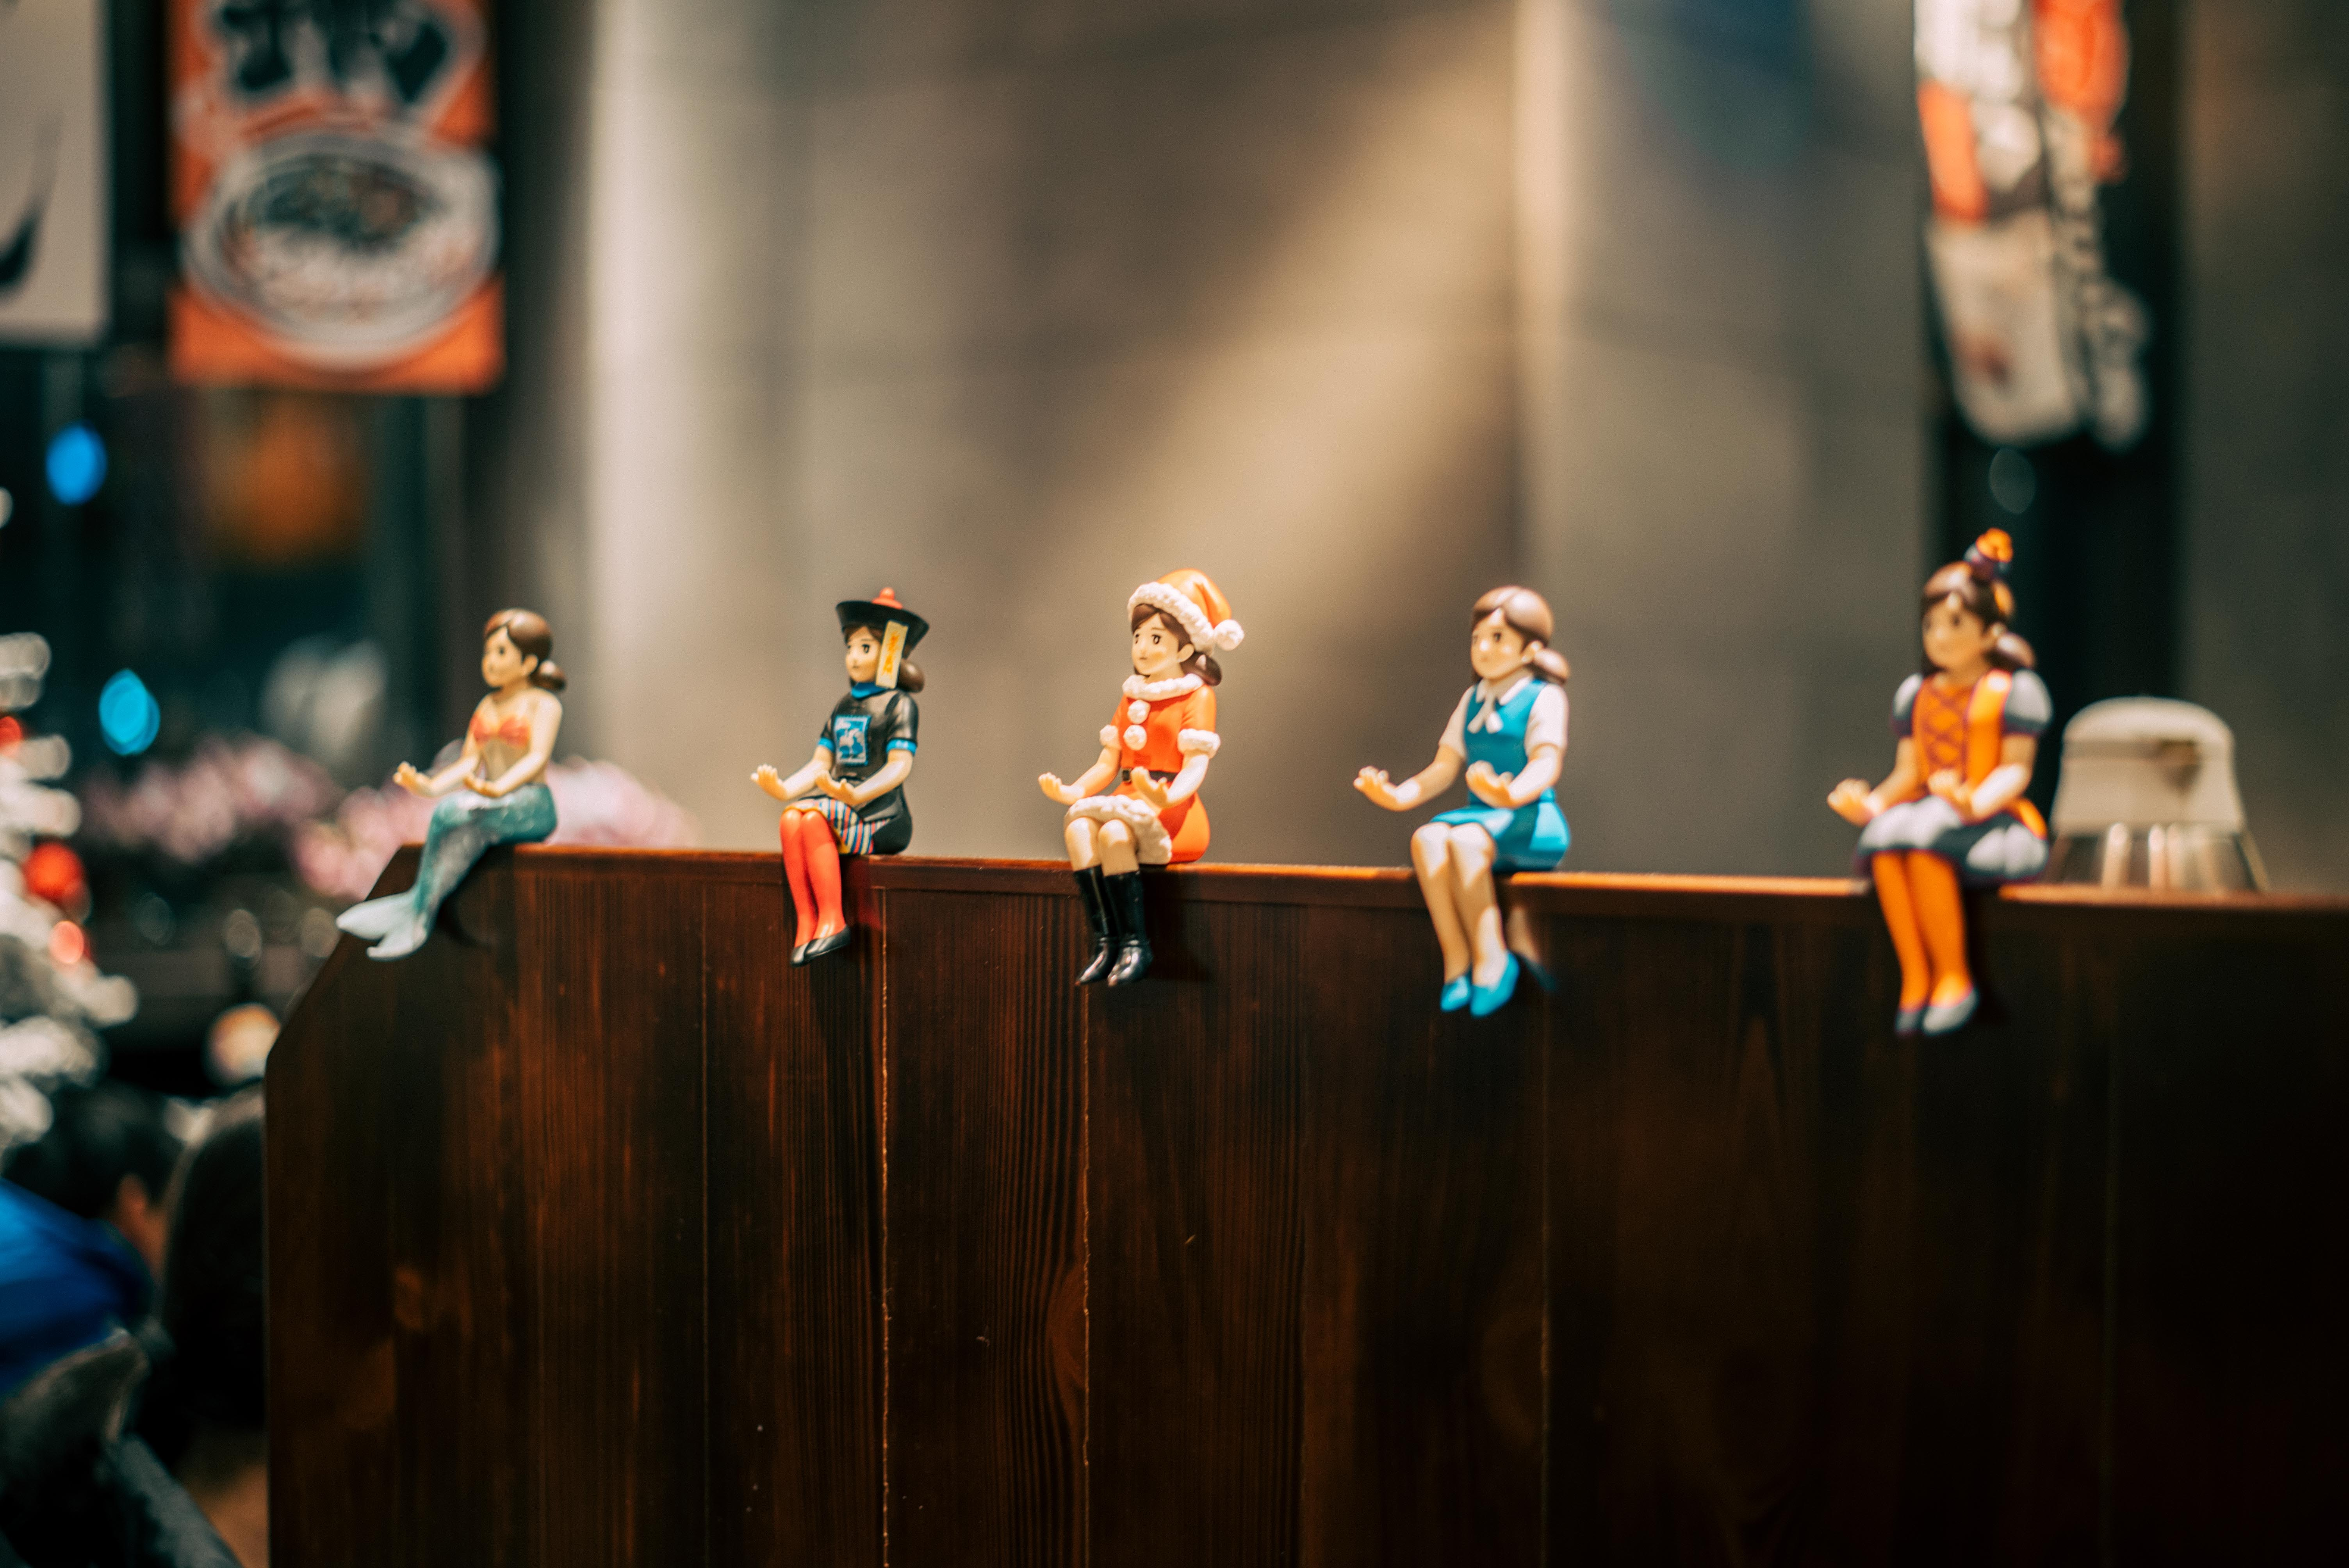 women action figures sits on brown wooden panel